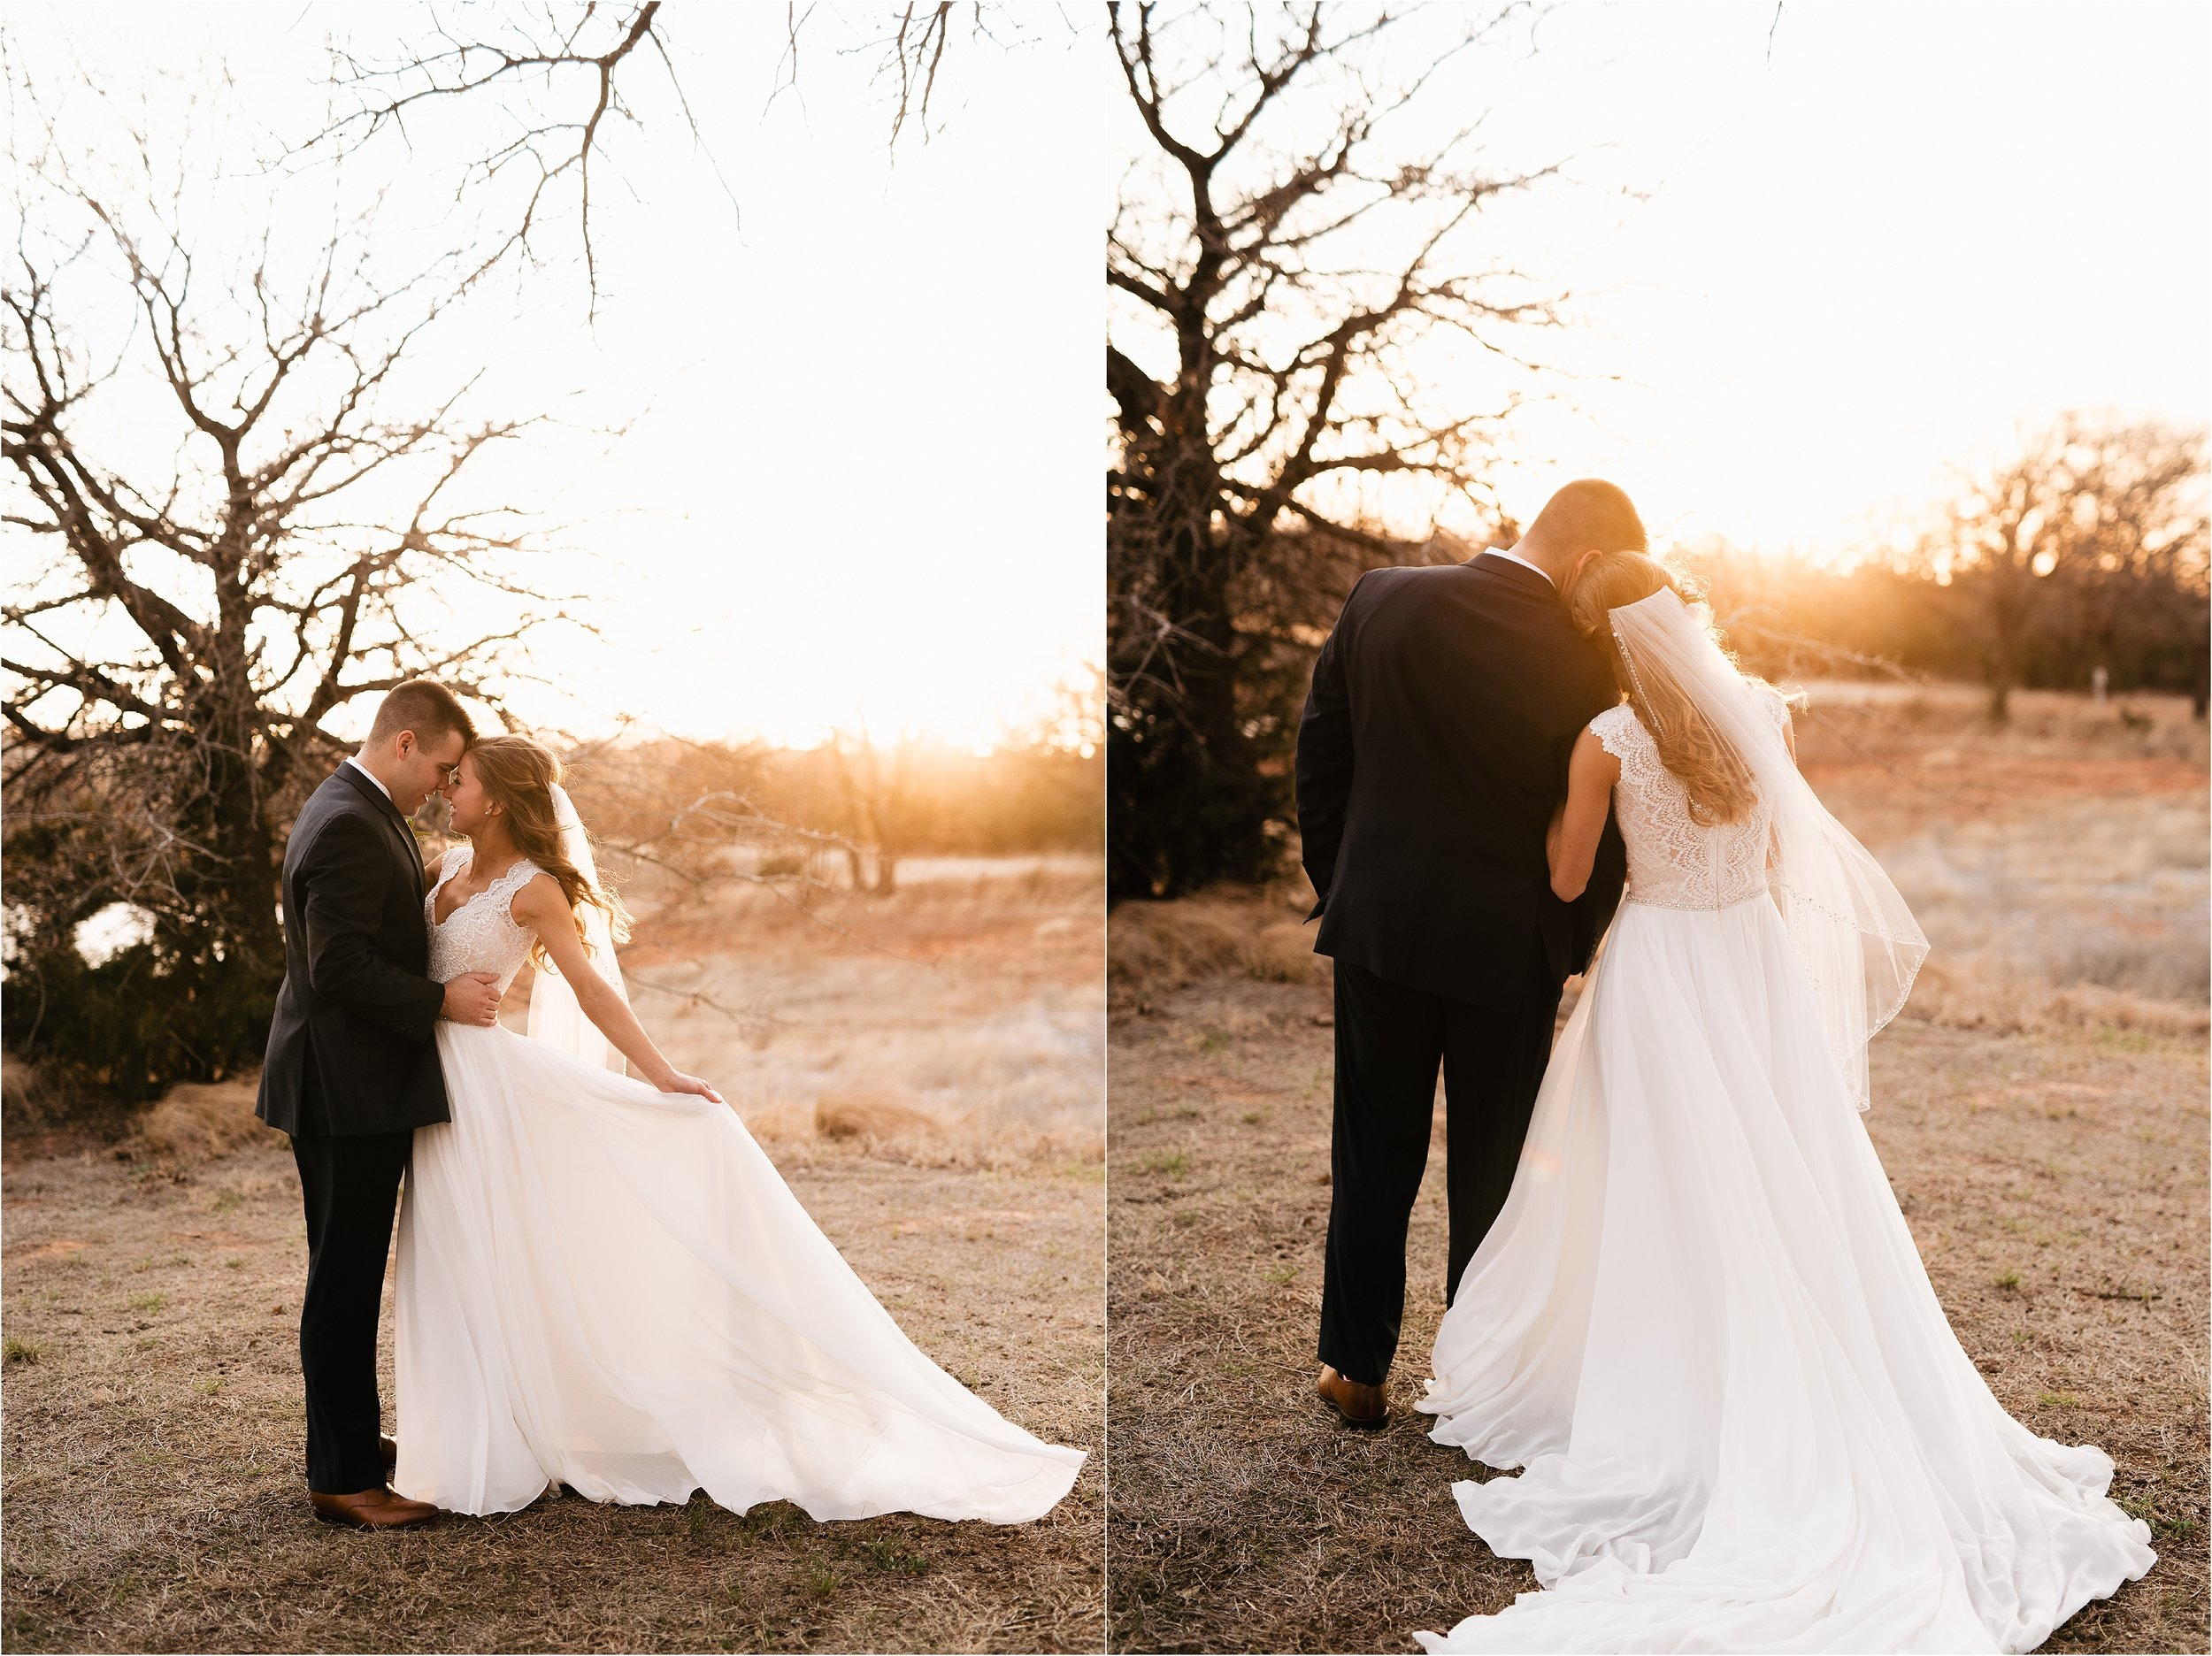 oklahoma wedding photographer groom bride veil sunset outdoors overcast portrait wedding the springs norman